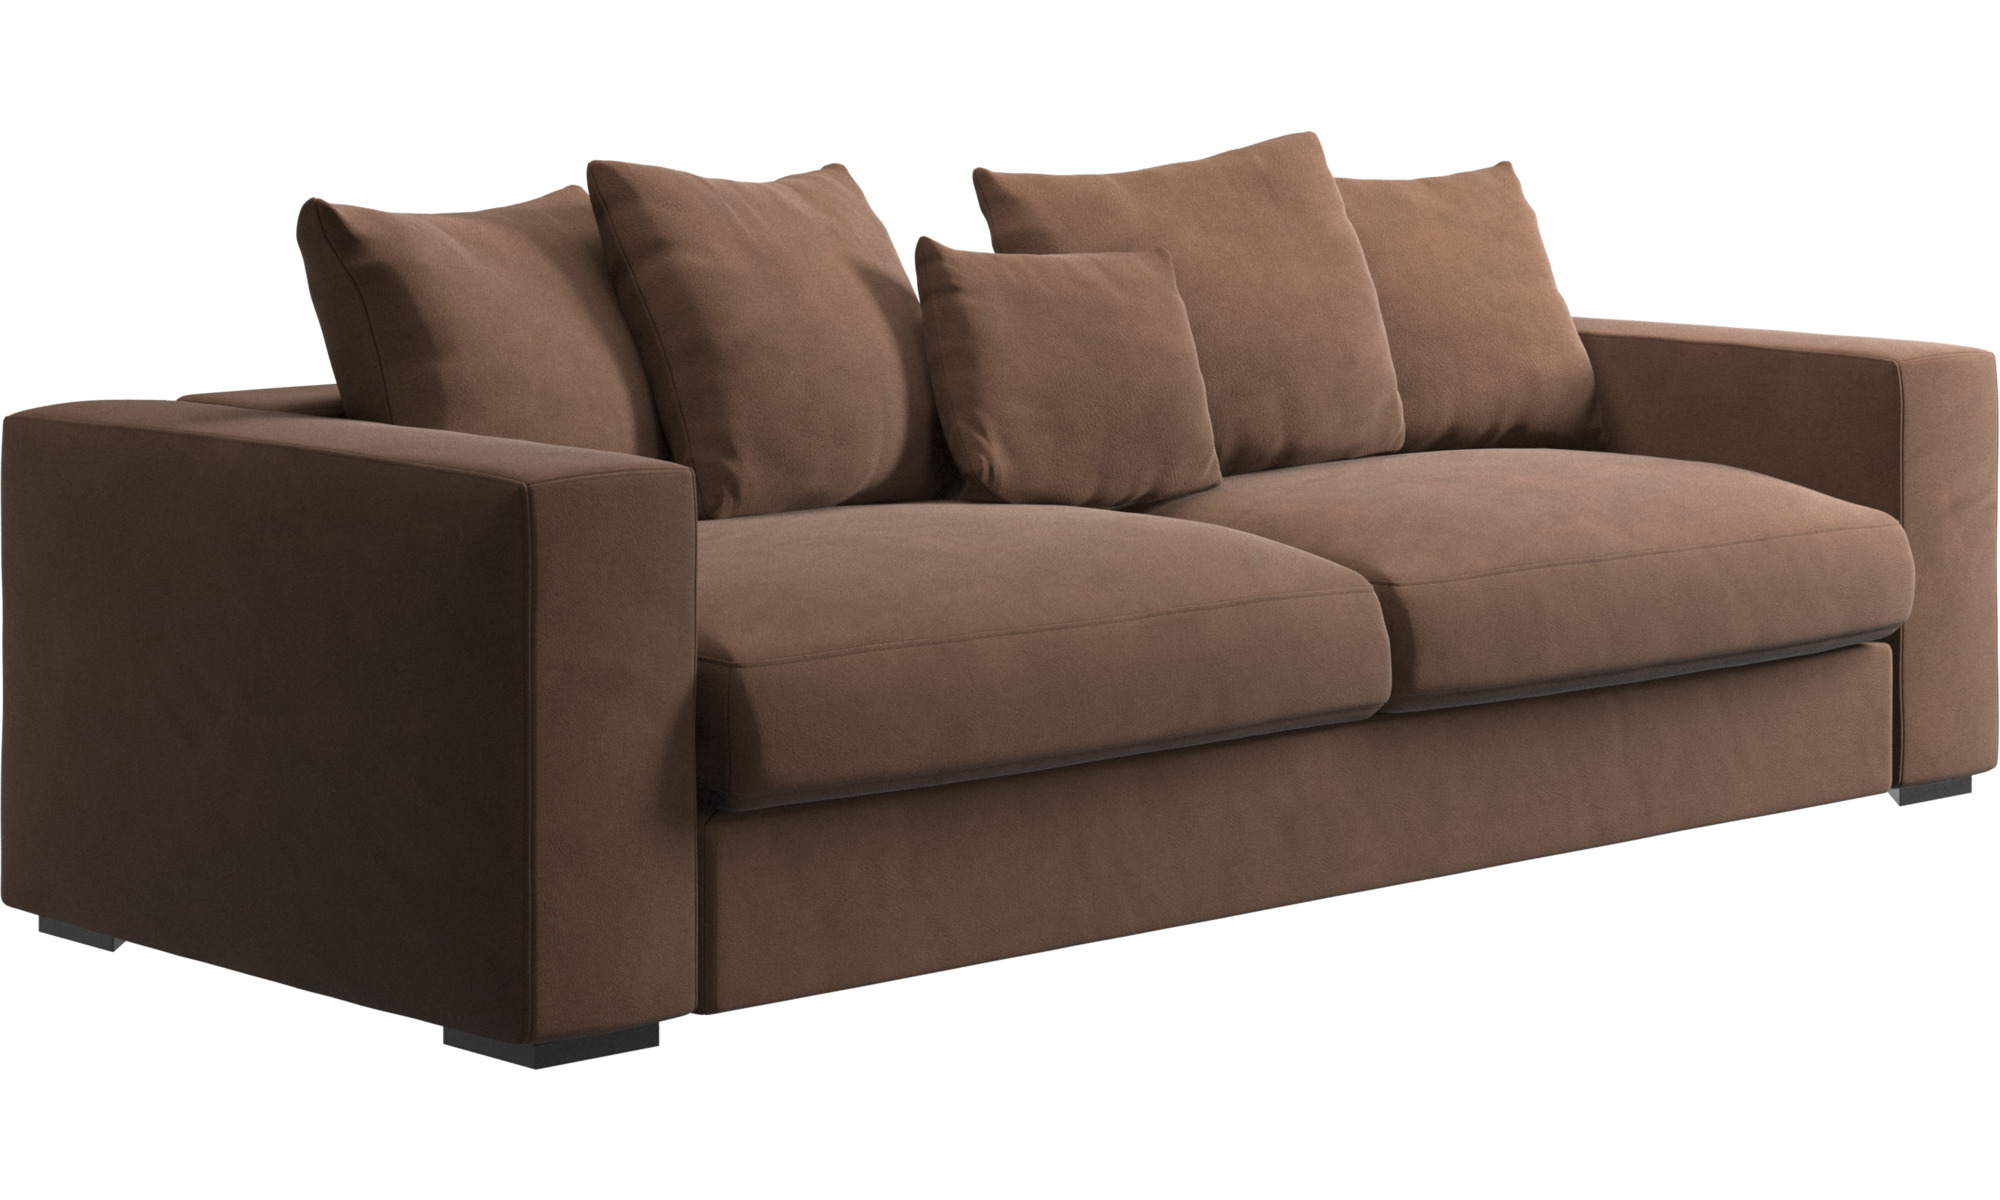 boconcept sofa ebay 2 seater below 10000 brown fabric sofas nia chaise lounge steal a